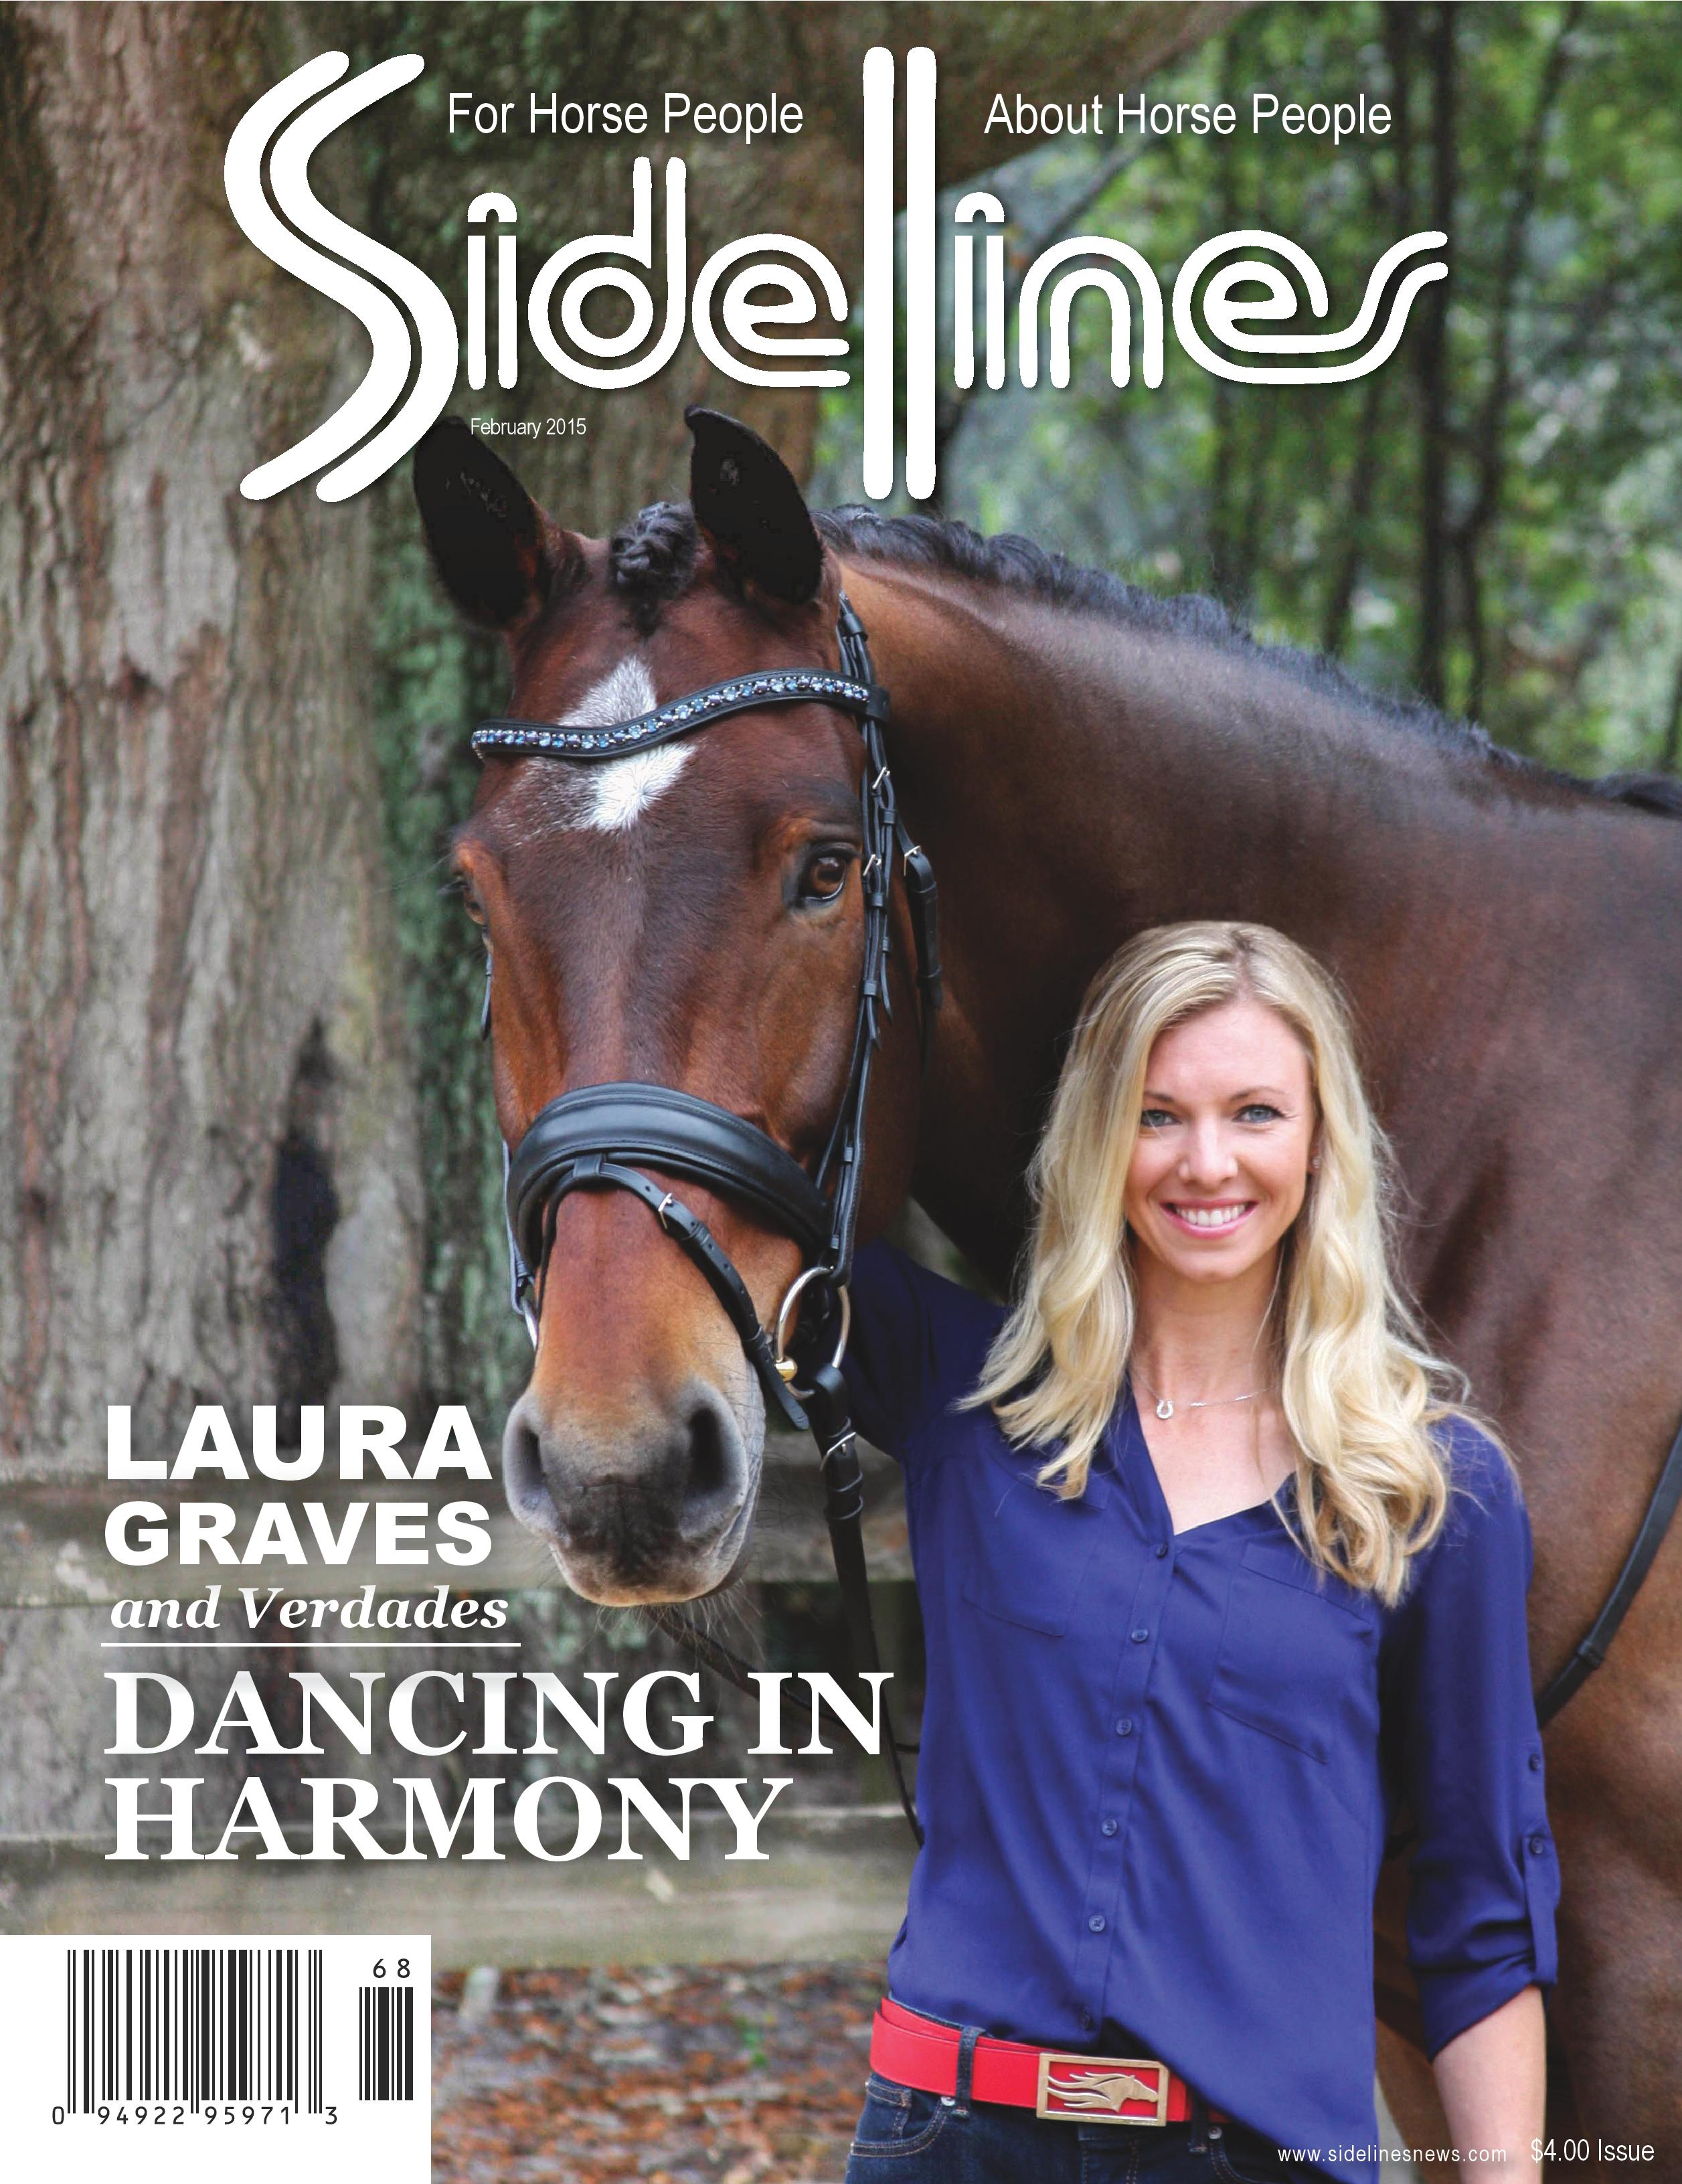 Laura Graves on the cover of the February issue of Sidelines Magazine. (Photo credit: Triple Stitch Photography)